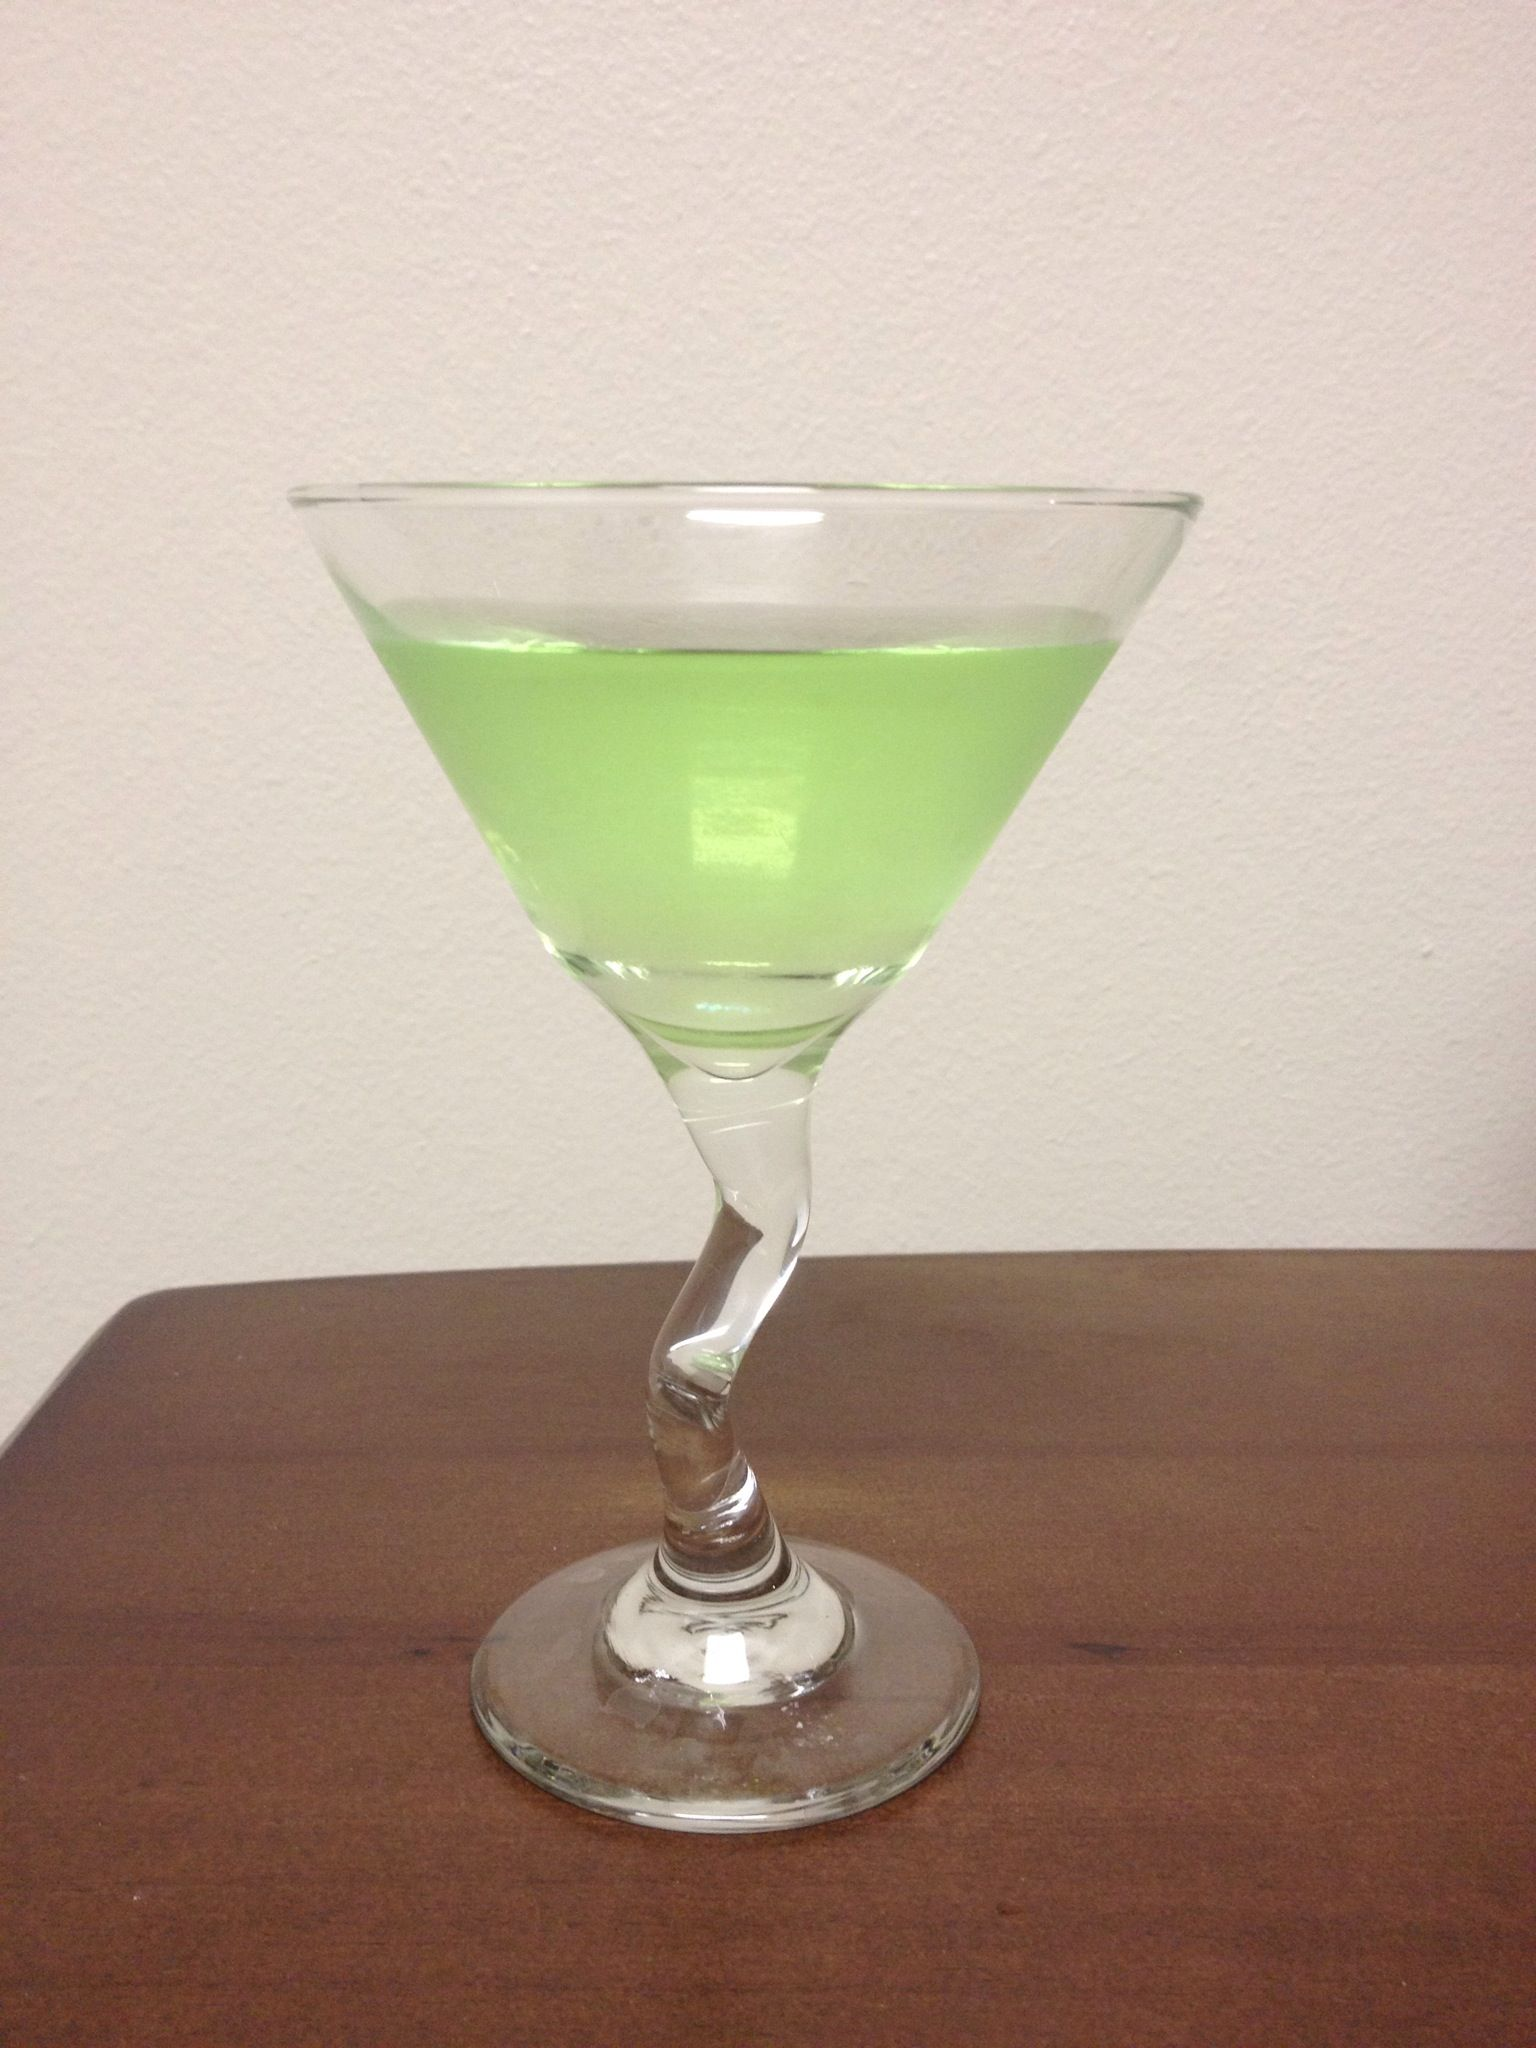 How to Make an Apple Martini (Appletini) Recipe Best